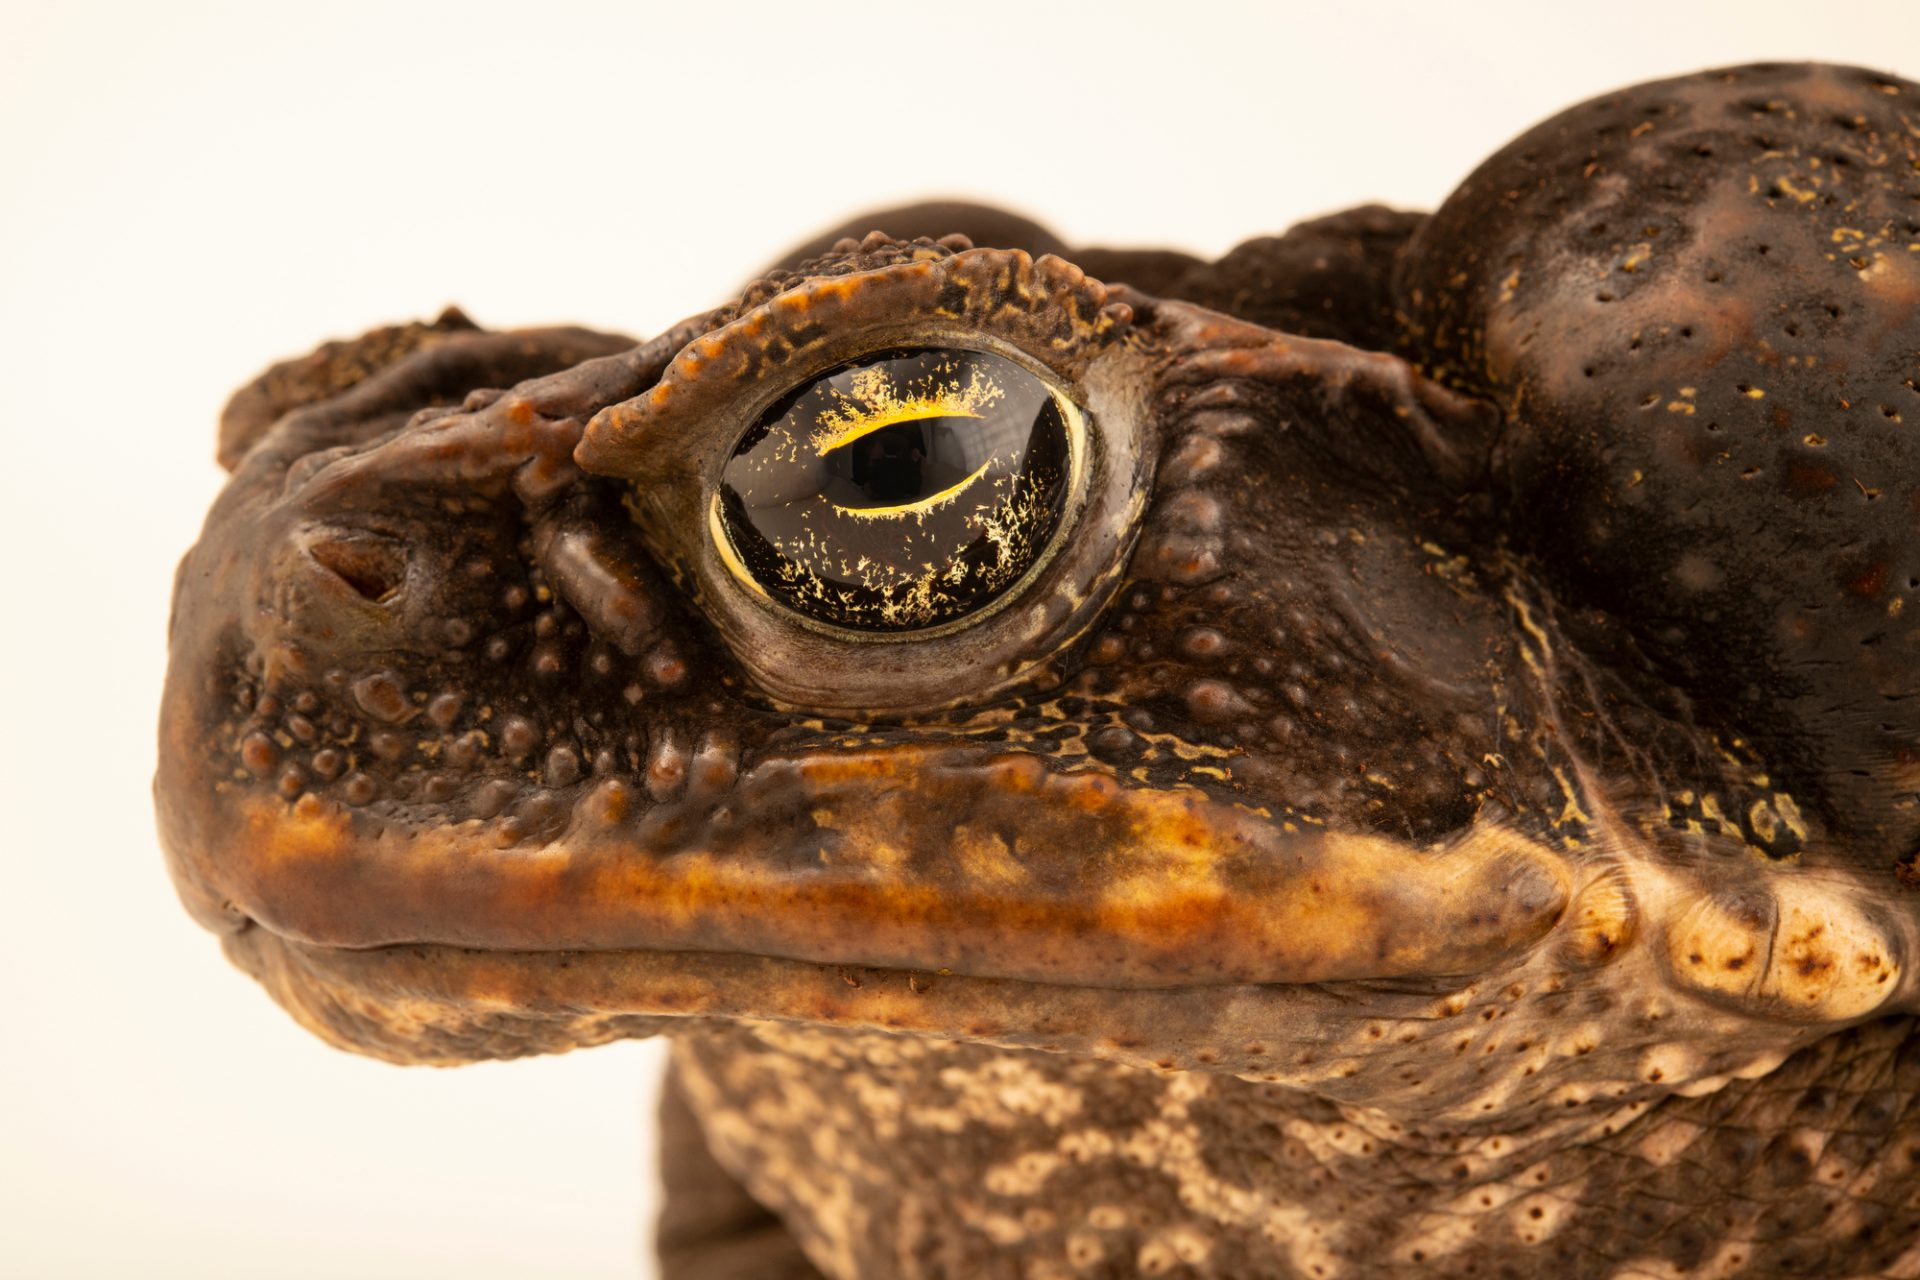 Photo: Cane toad (Rhinella marina) at the Moscow Zoo.